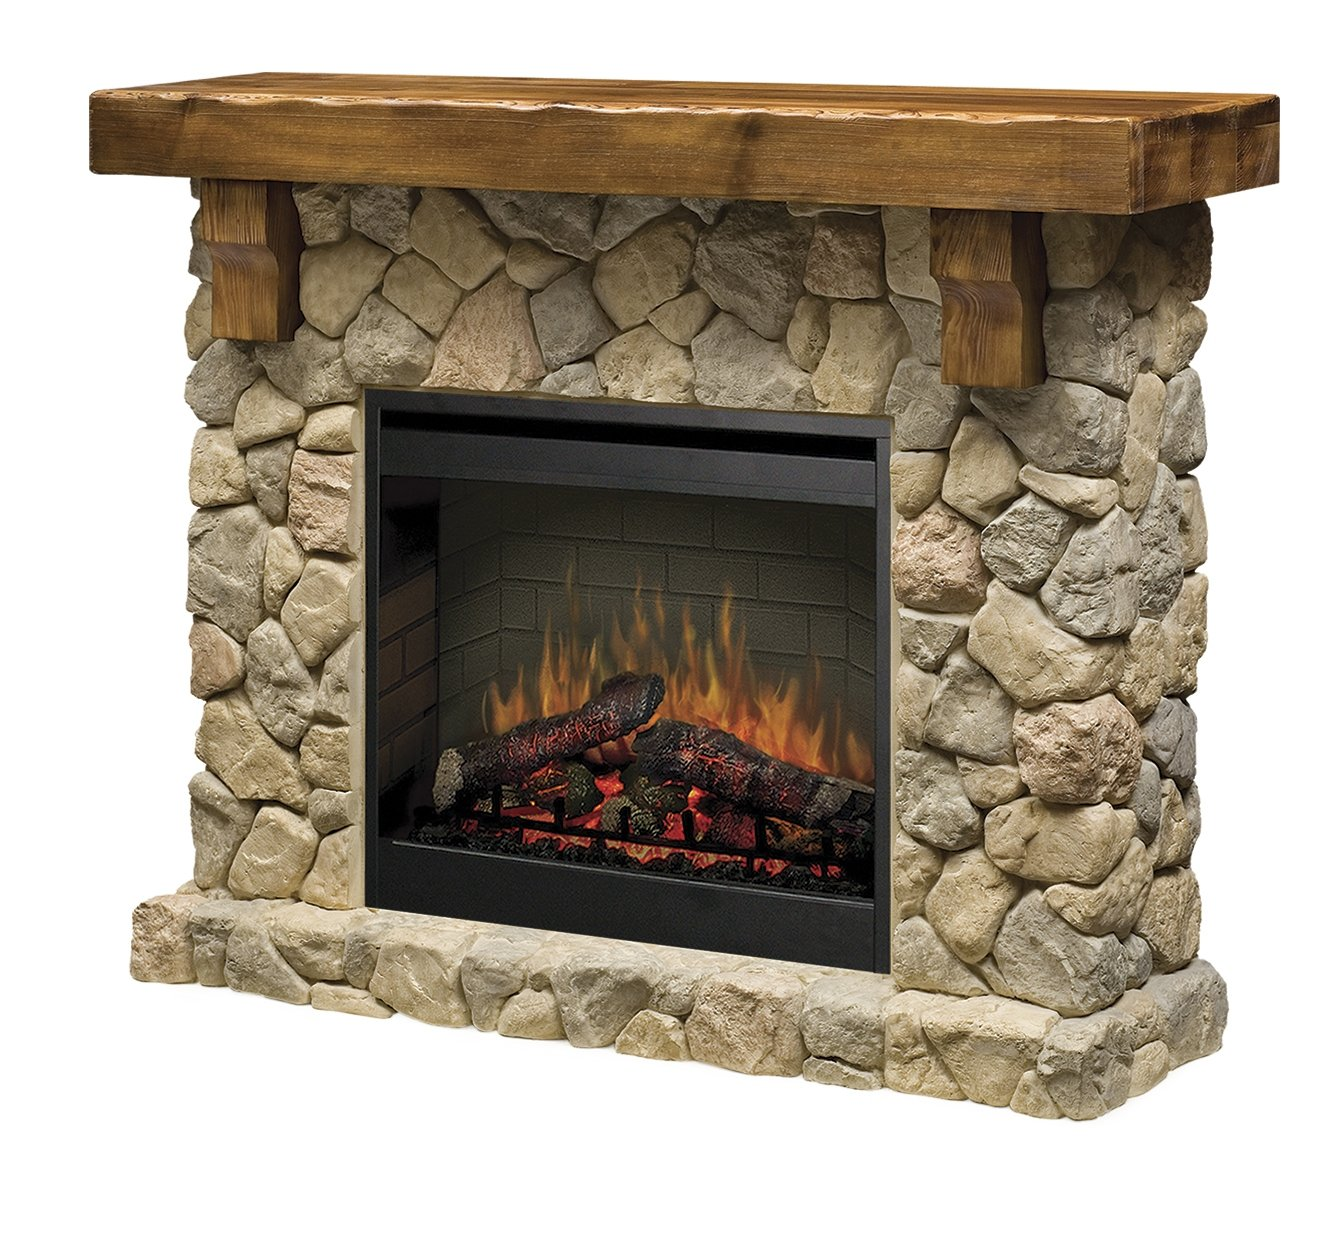 Check out our comprehensive Dimplex Electric Fireplace Mantel Review SMP-904-ST. We reveal all the honest pros and cons of this electric fireplace mantel.